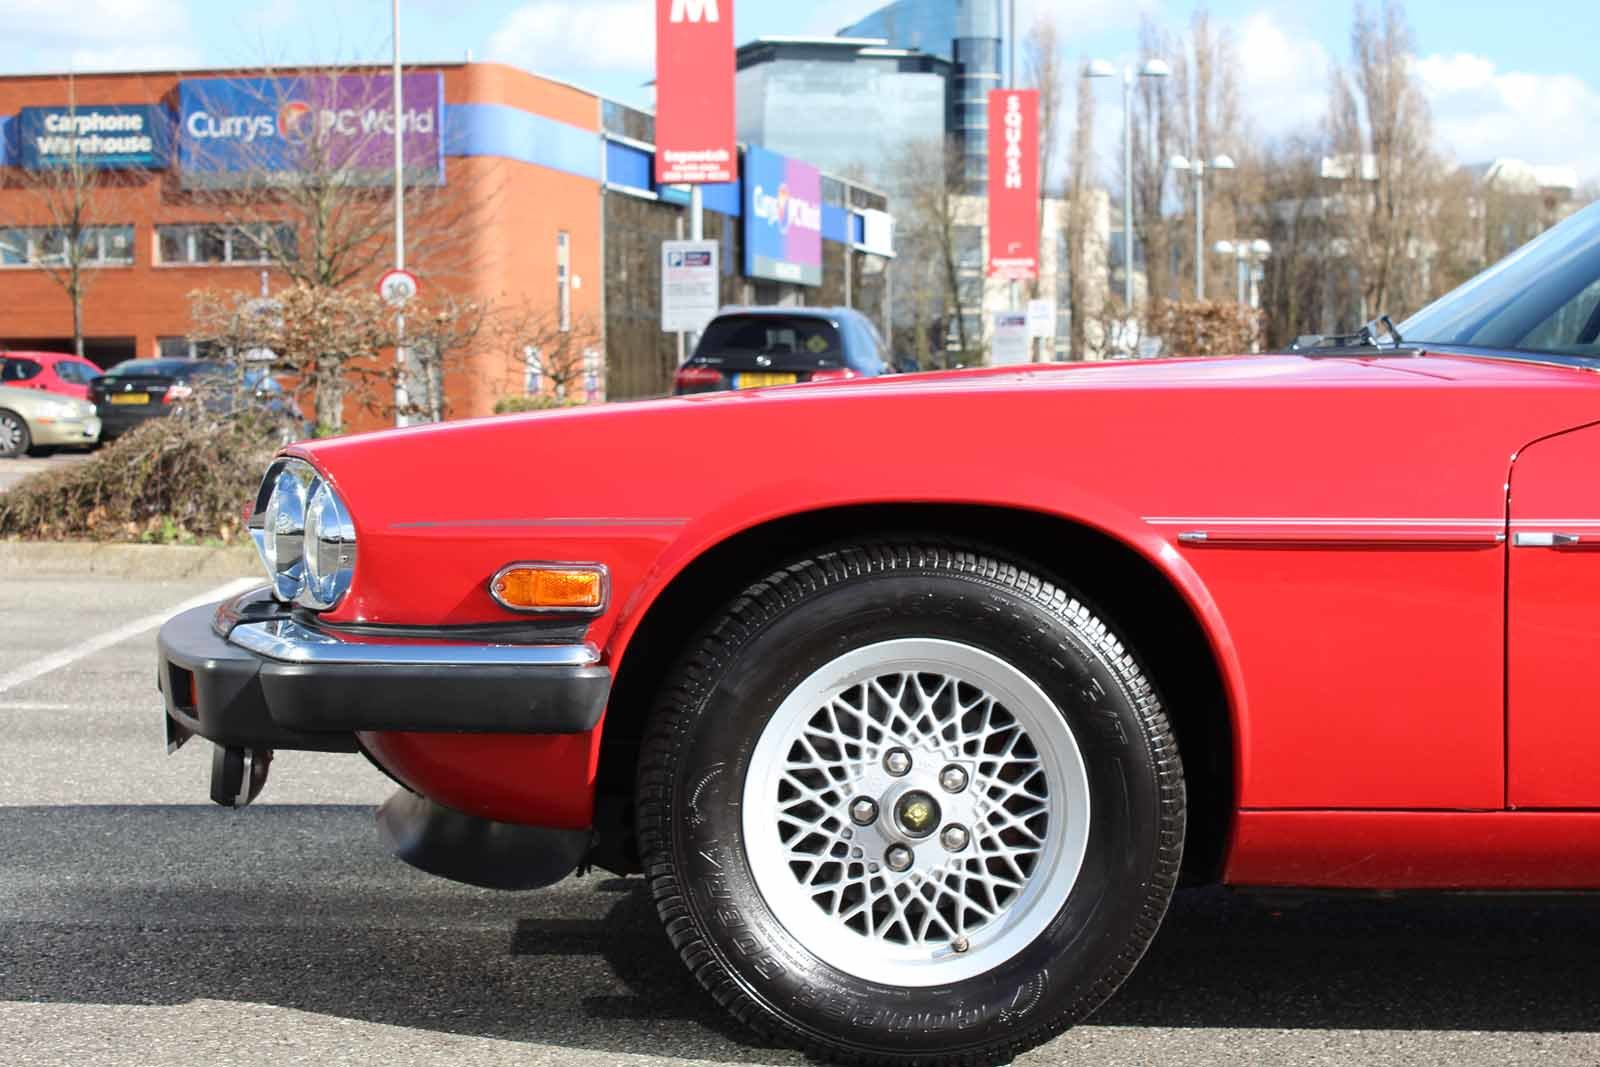 1989 Jaguar XJS V12 Coupe Just 3500 Miles! (LHD) For Sale (picture 11 of 19)